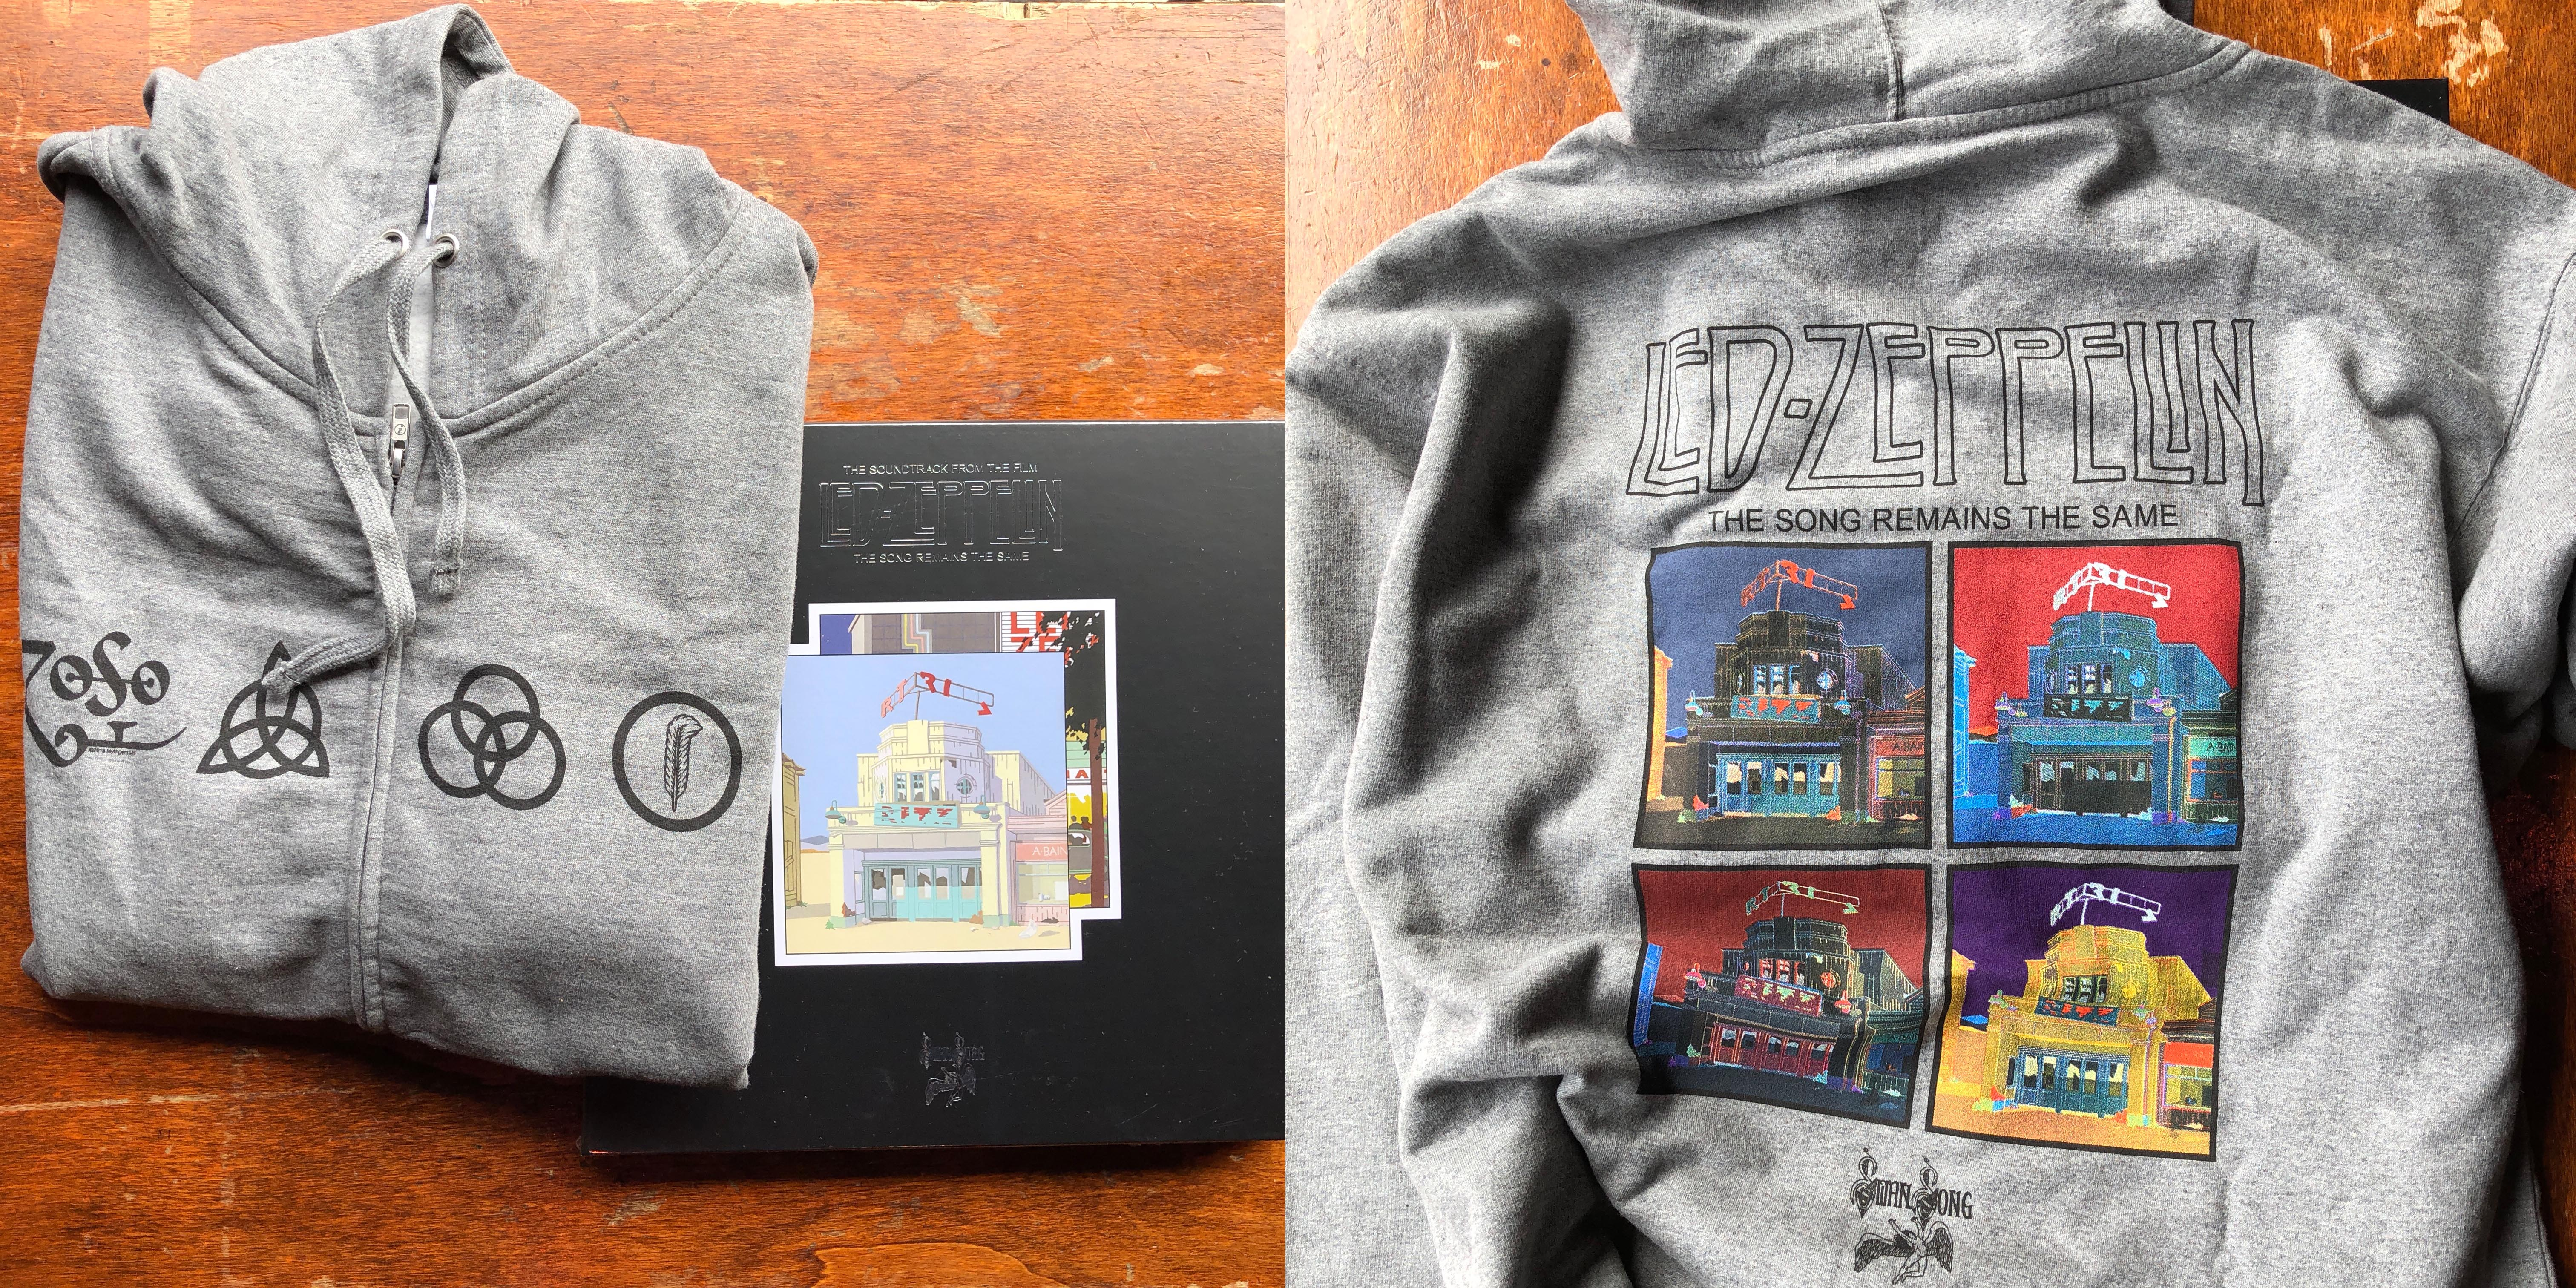 News Easy Street Records X8 Kendrick T Shirt Size M To Celebrate The Release Of Led Zeppelins Expanded Box Set Version Their 1976 Live Album And Concert Film Song Remains Same We Have This Sweet